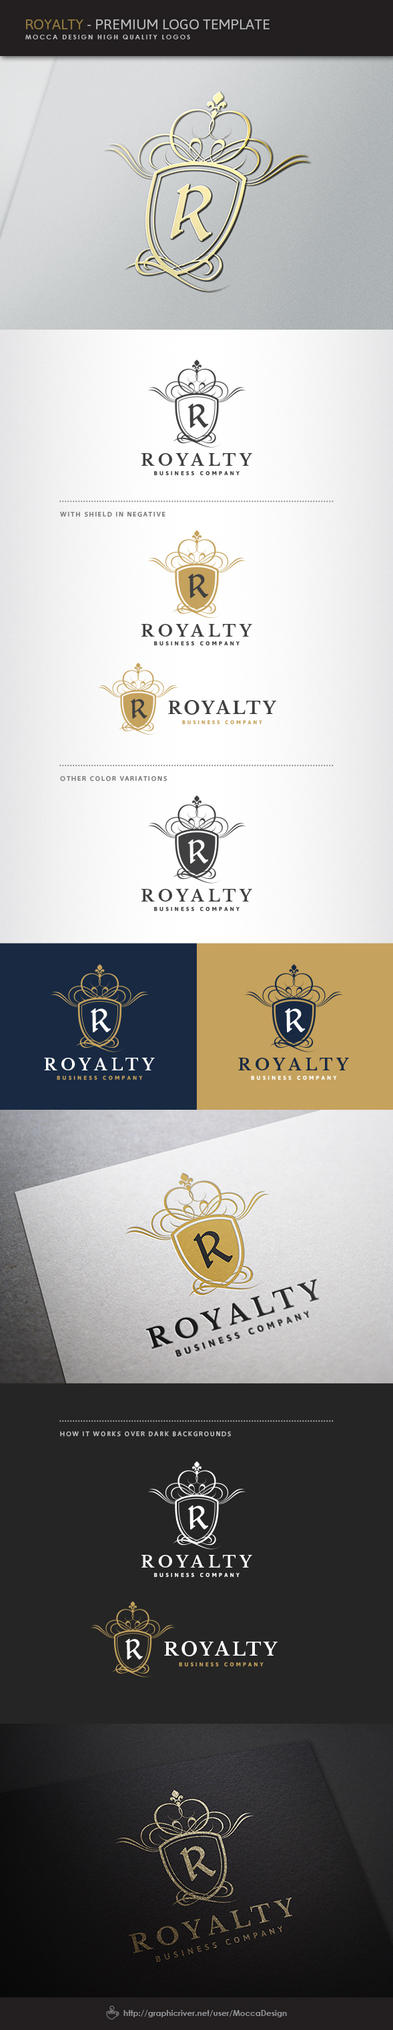 Royalty Logo by moccadsgn